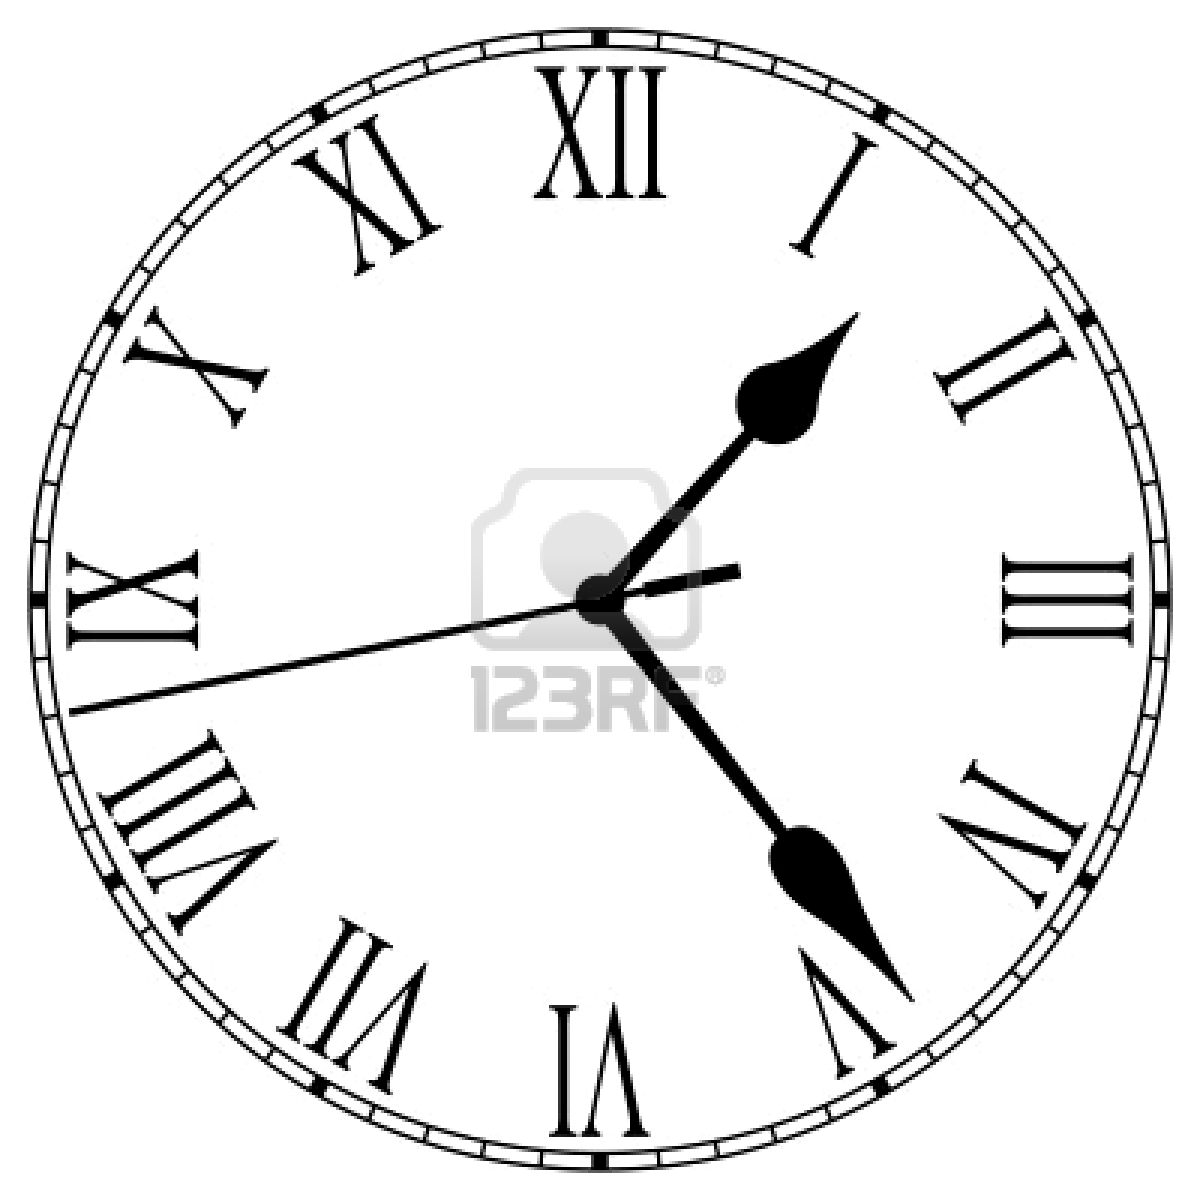 Roman Numeral Drawing at GetDrawings.com | Free for personal use ...